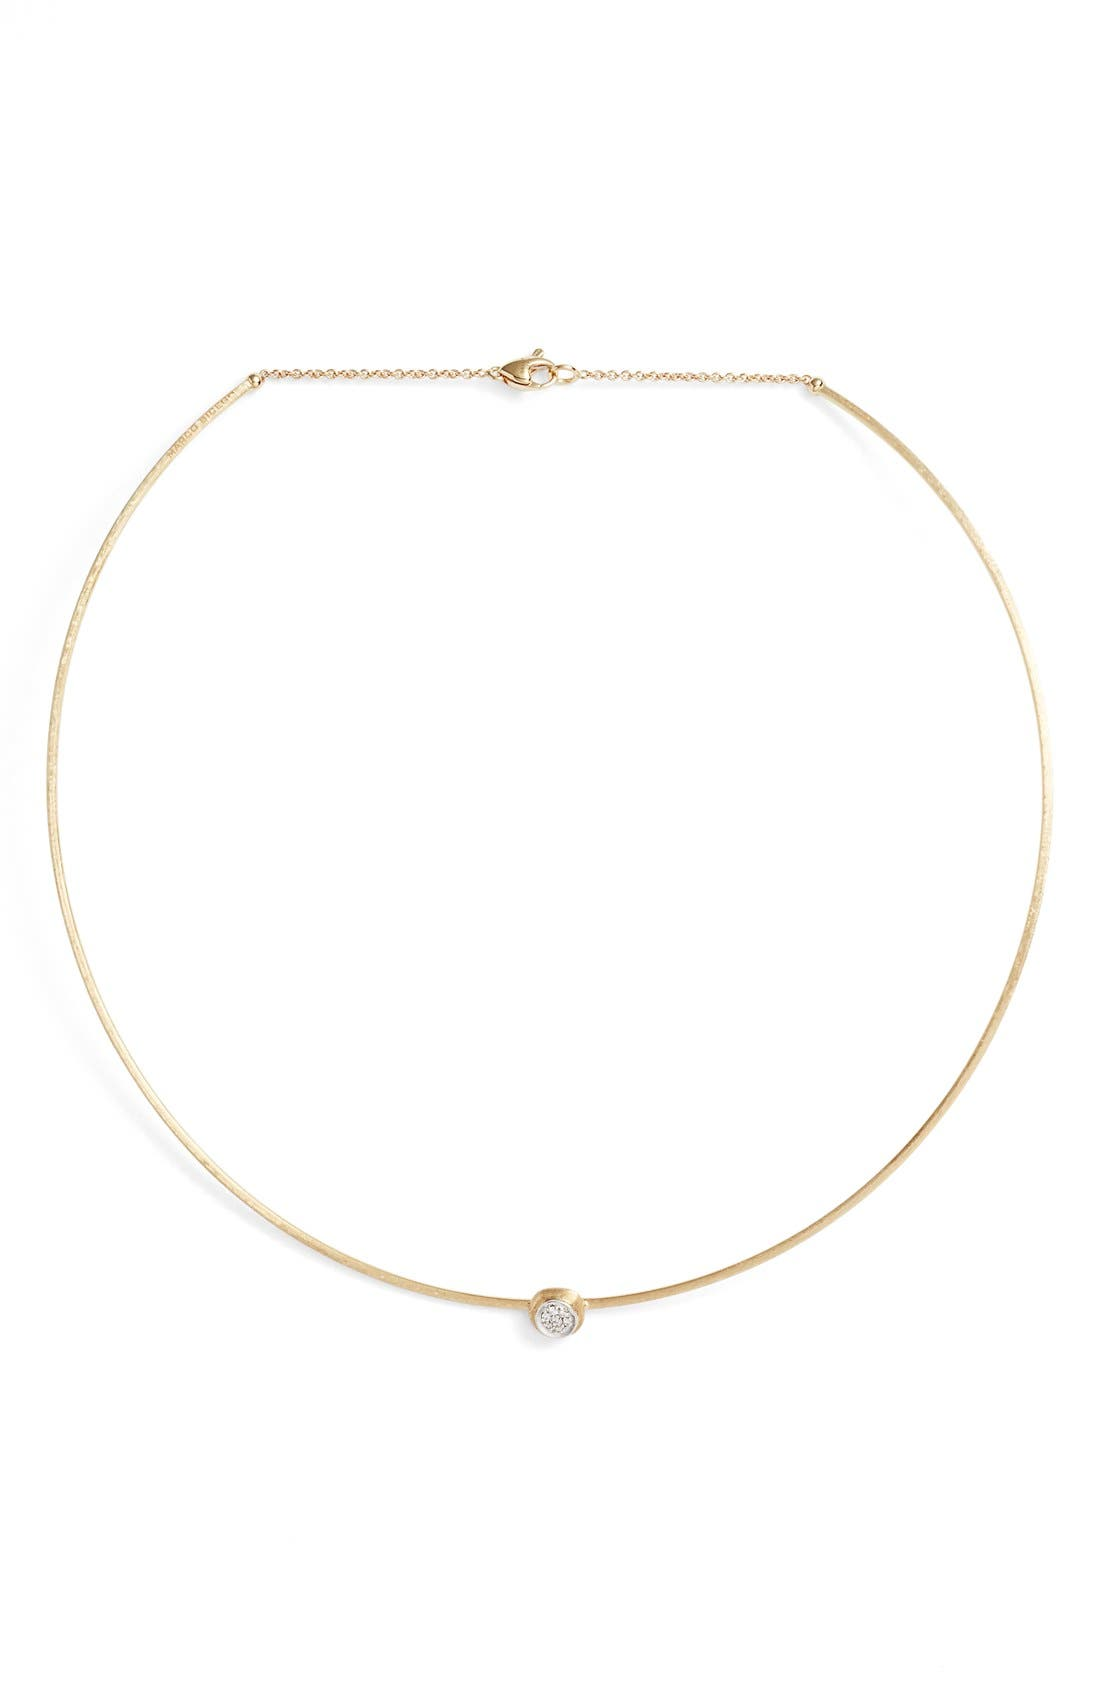 Diamond Collar Necklace,                         Main,                         color, Yellow Gold